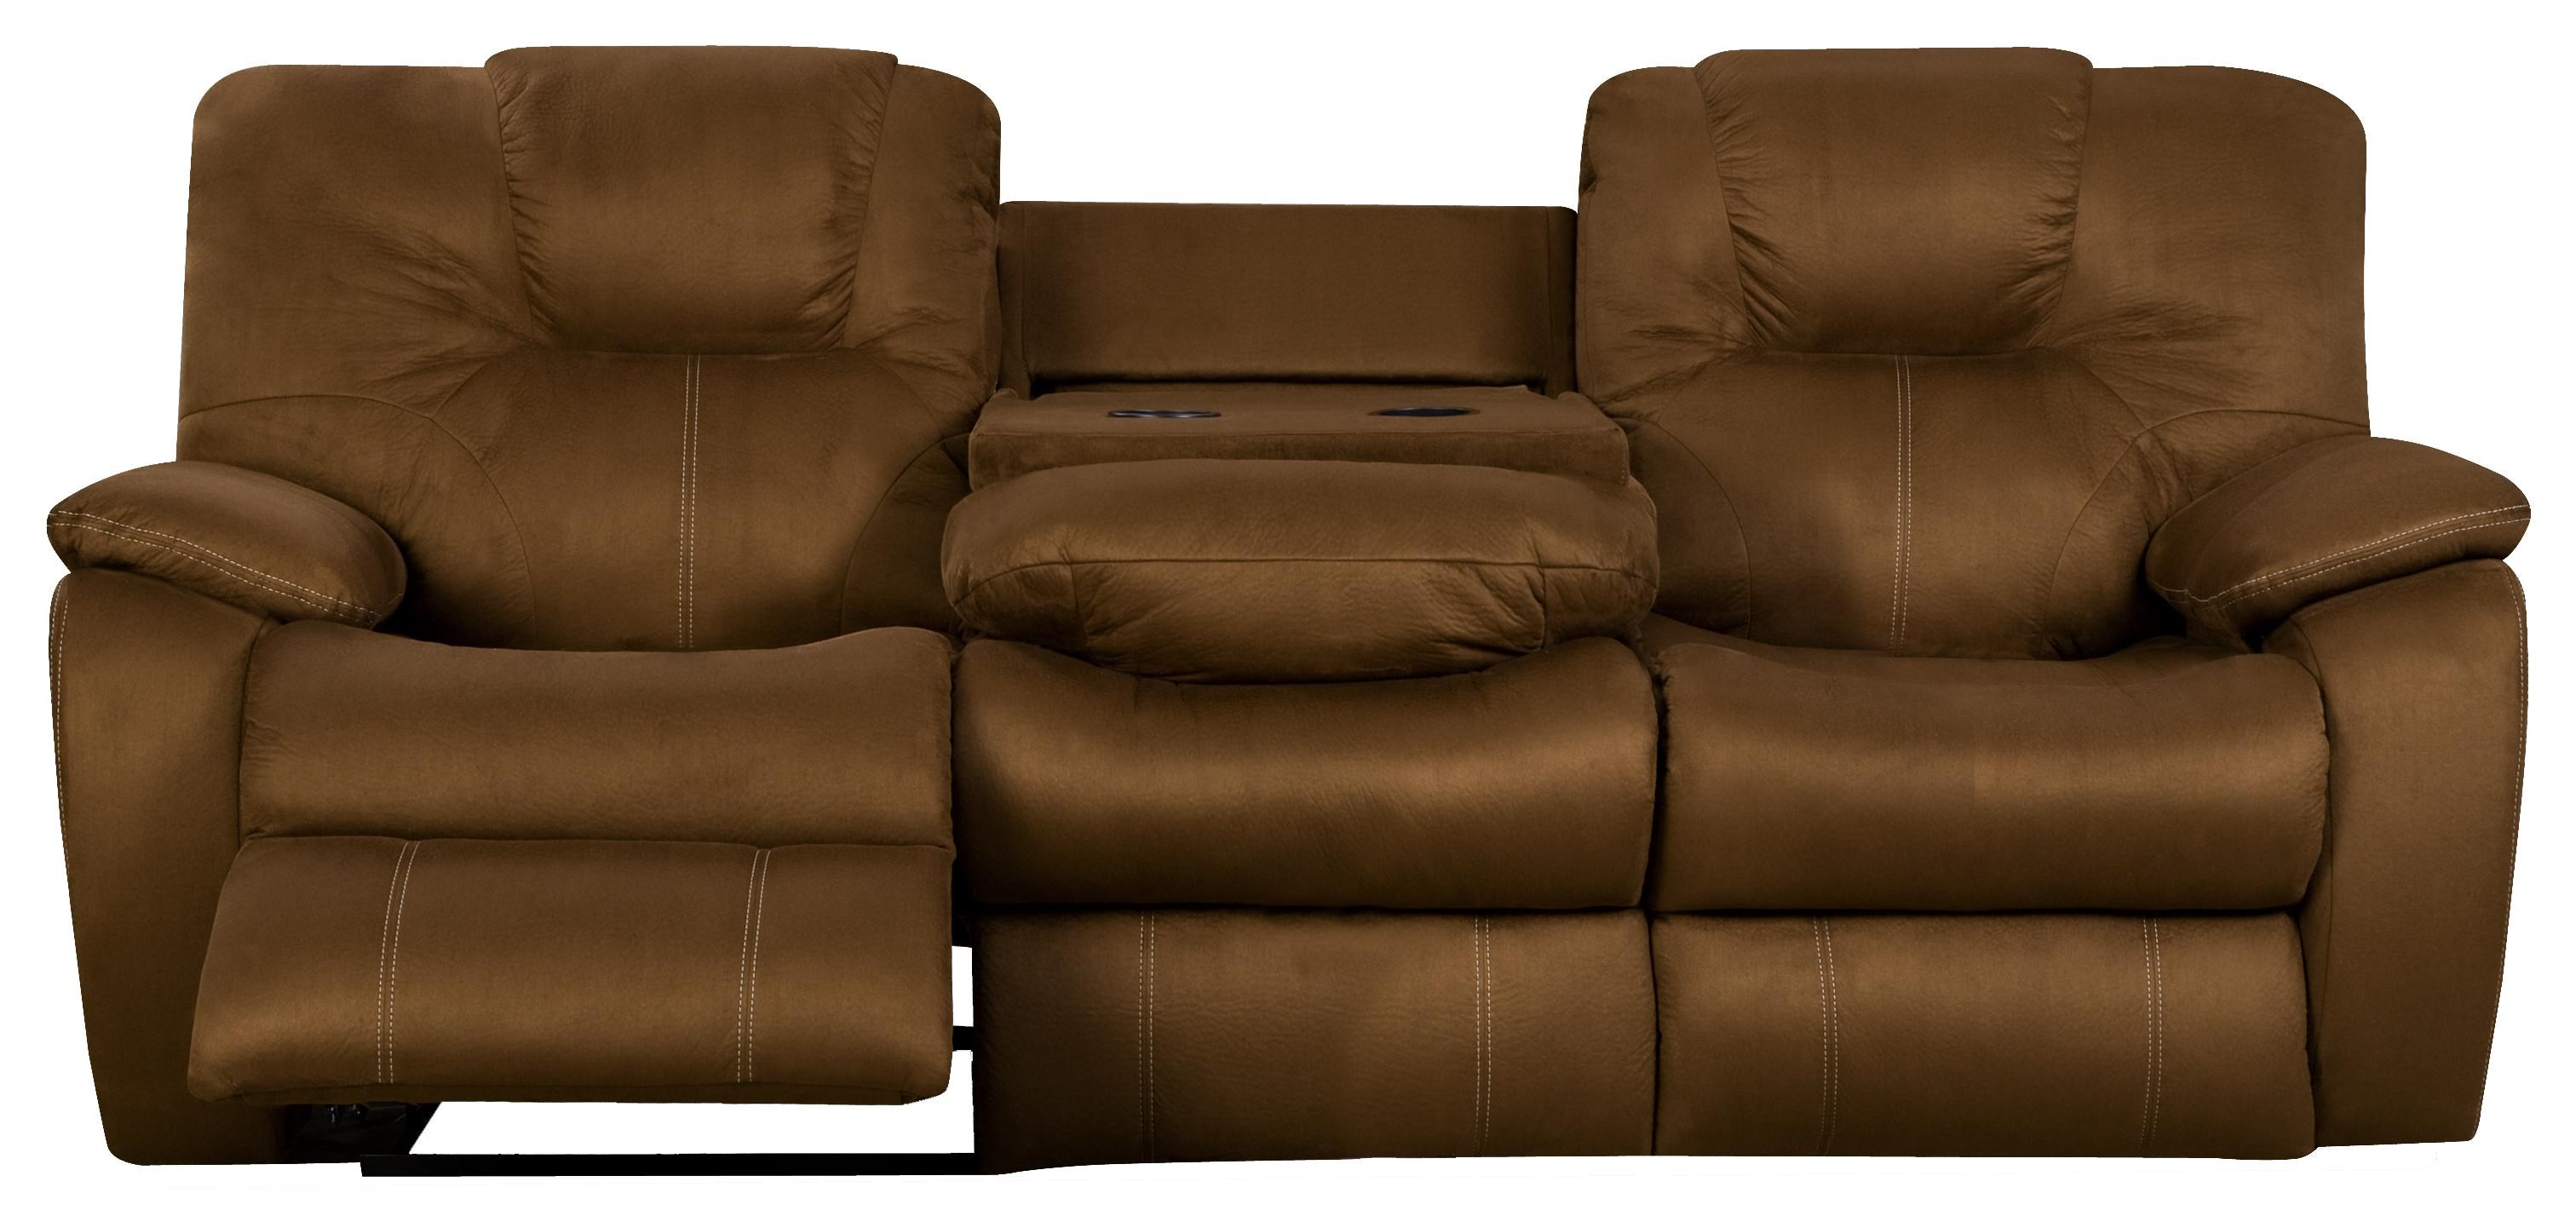 Superior Southern Motion AvalonReclining Sofa With Drop Down Table